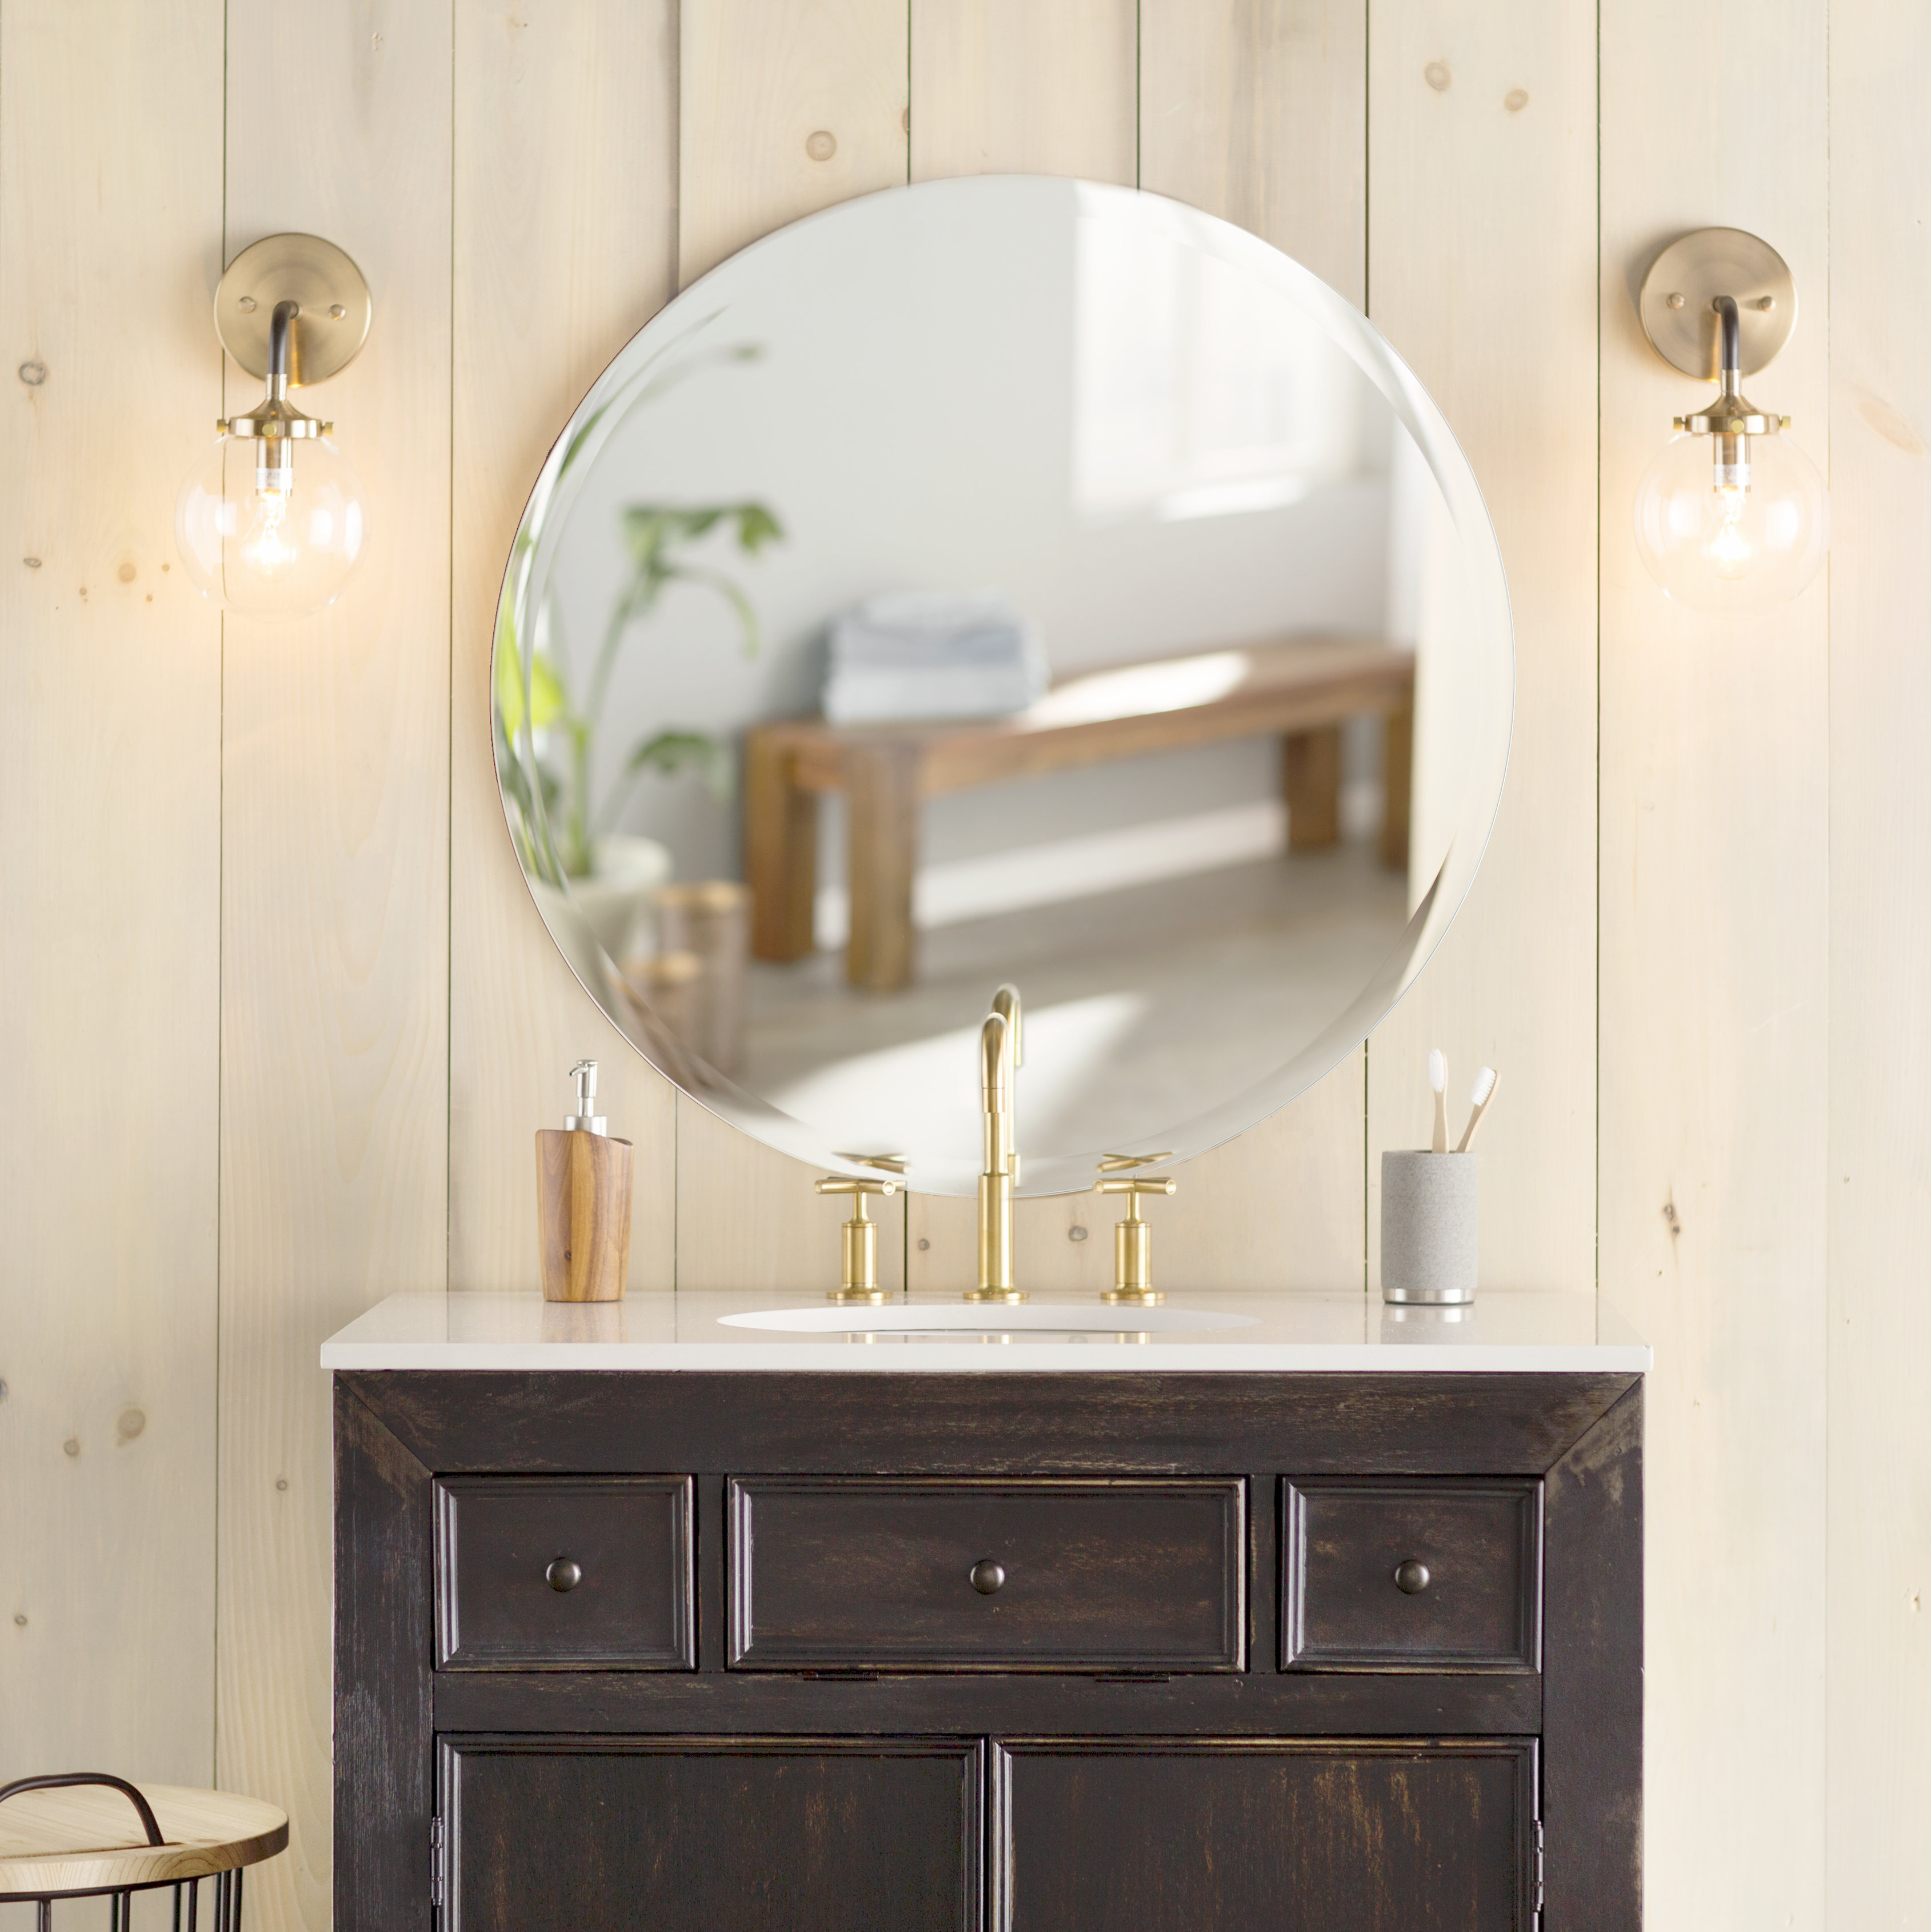 Colton Wall Mirror Pertaining To Colton Modern & Contemporary Wall Mirrors (View 10 of 30)